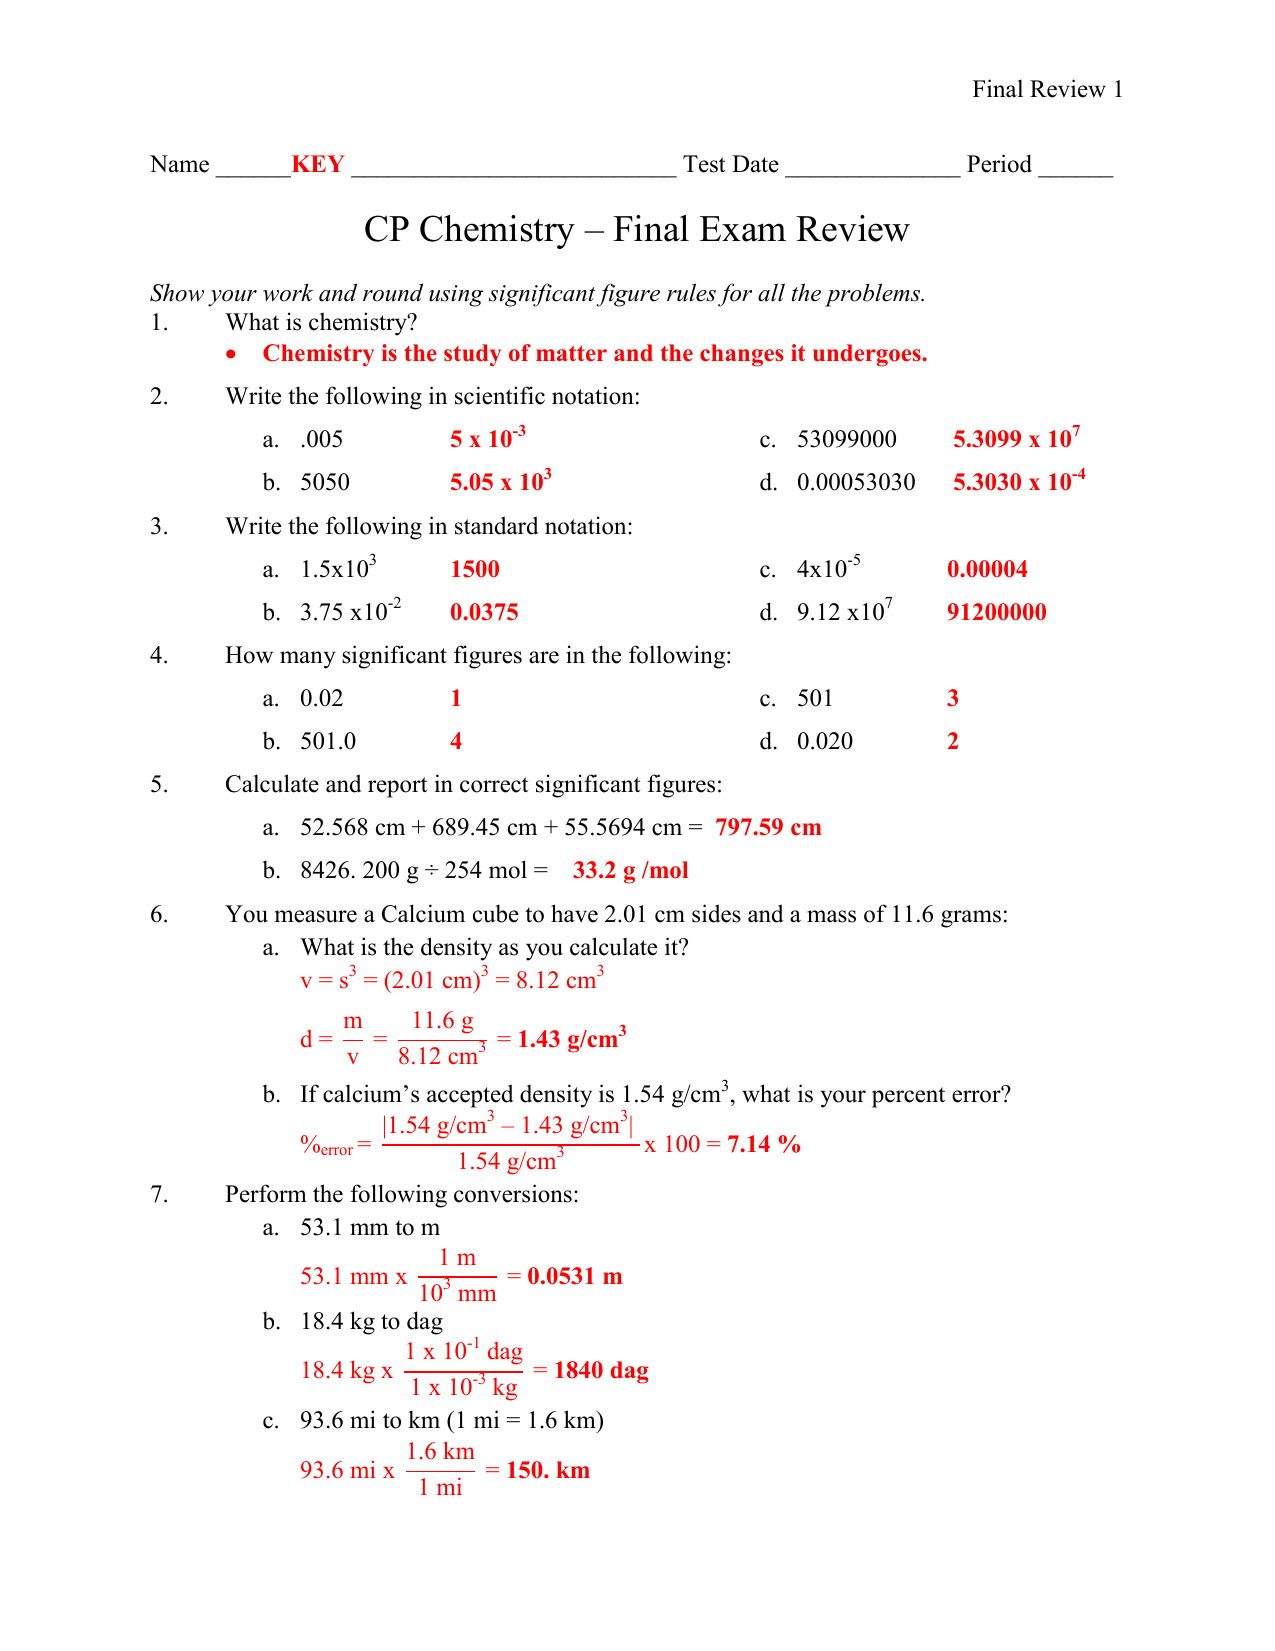 CP Chemistry - Final Exam Review KEY